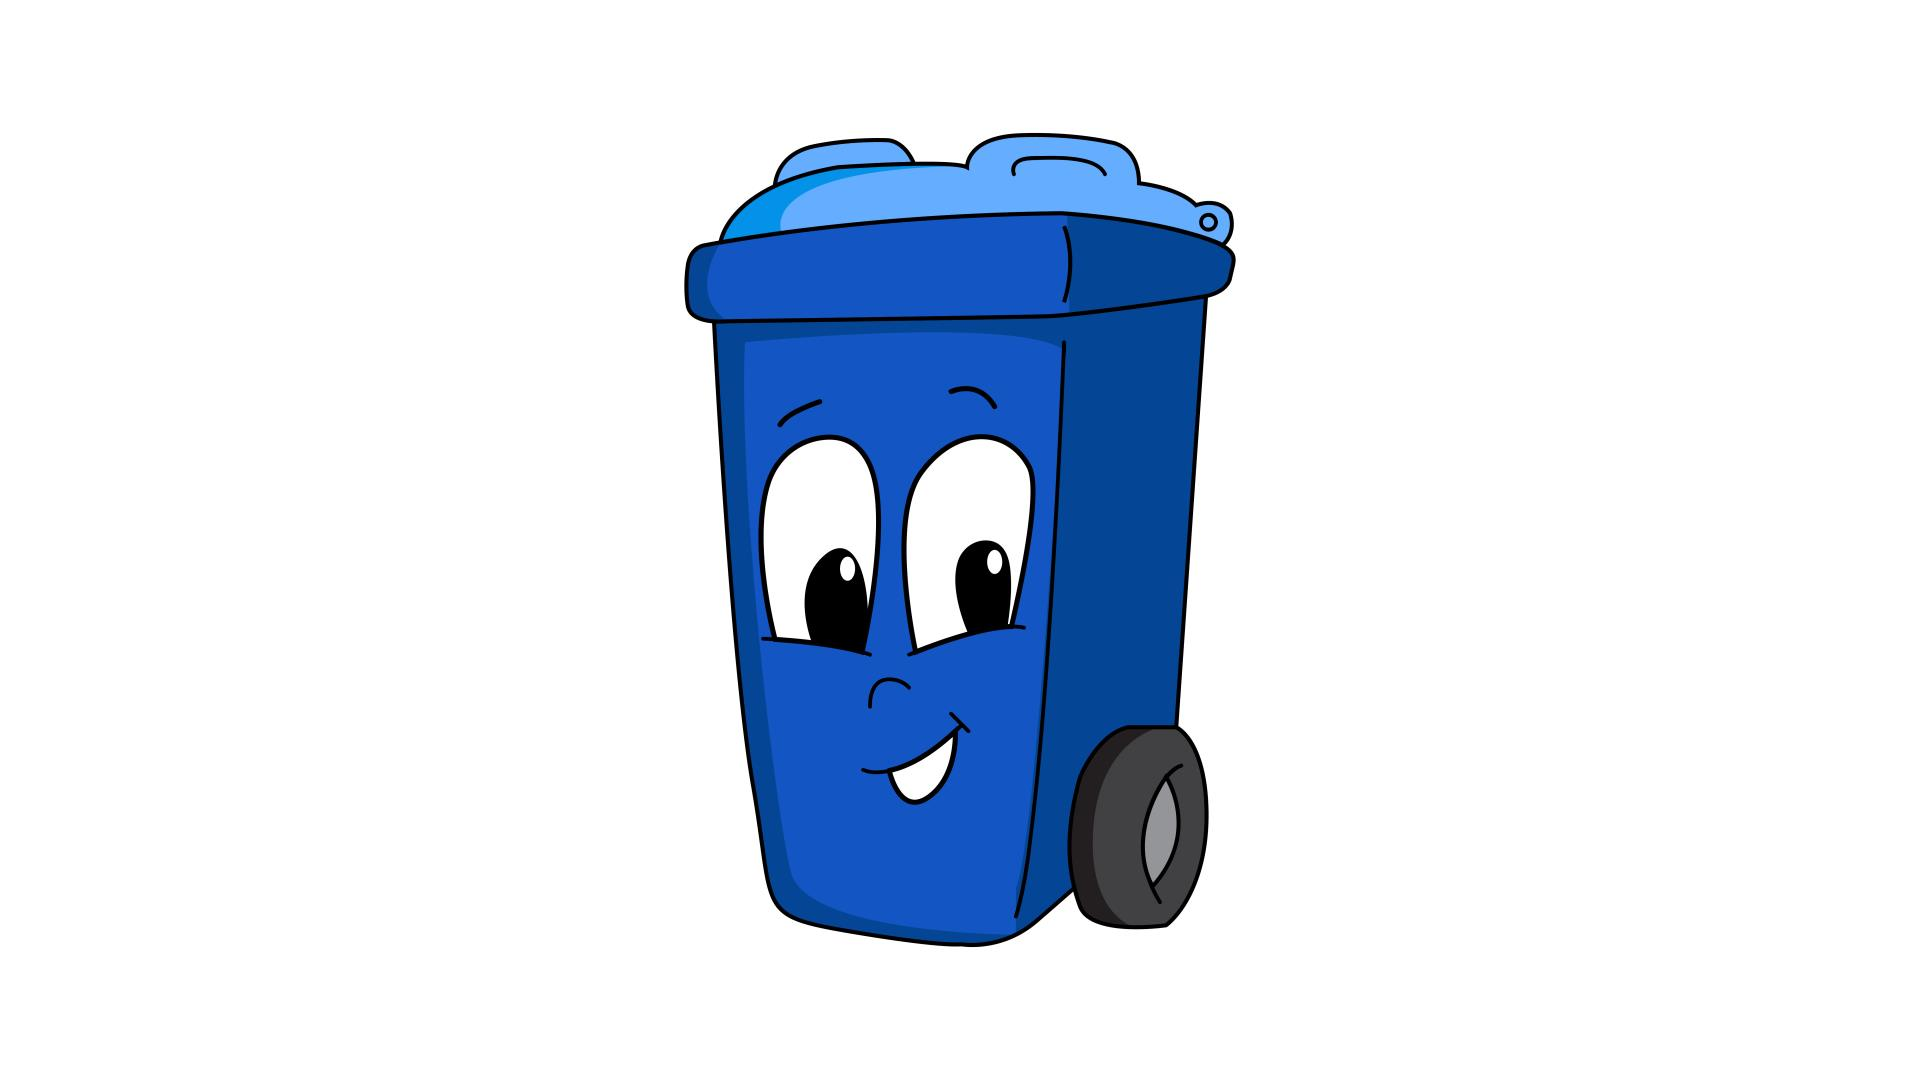 Animated trash bin Image